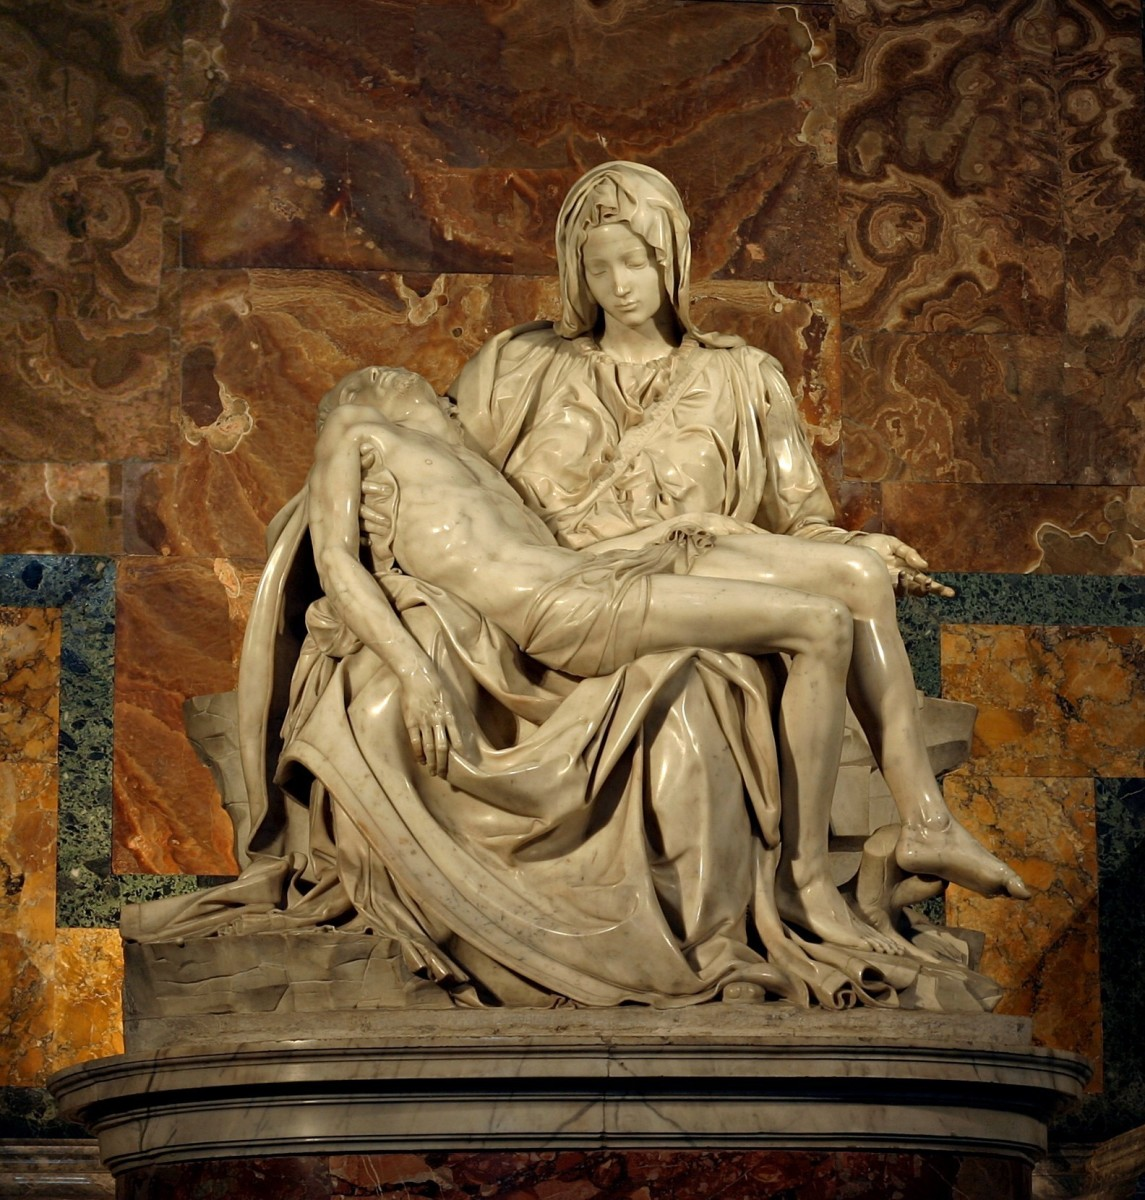 Michelangelo's Pieta, a sculpture of similar style to many described in Piranesi